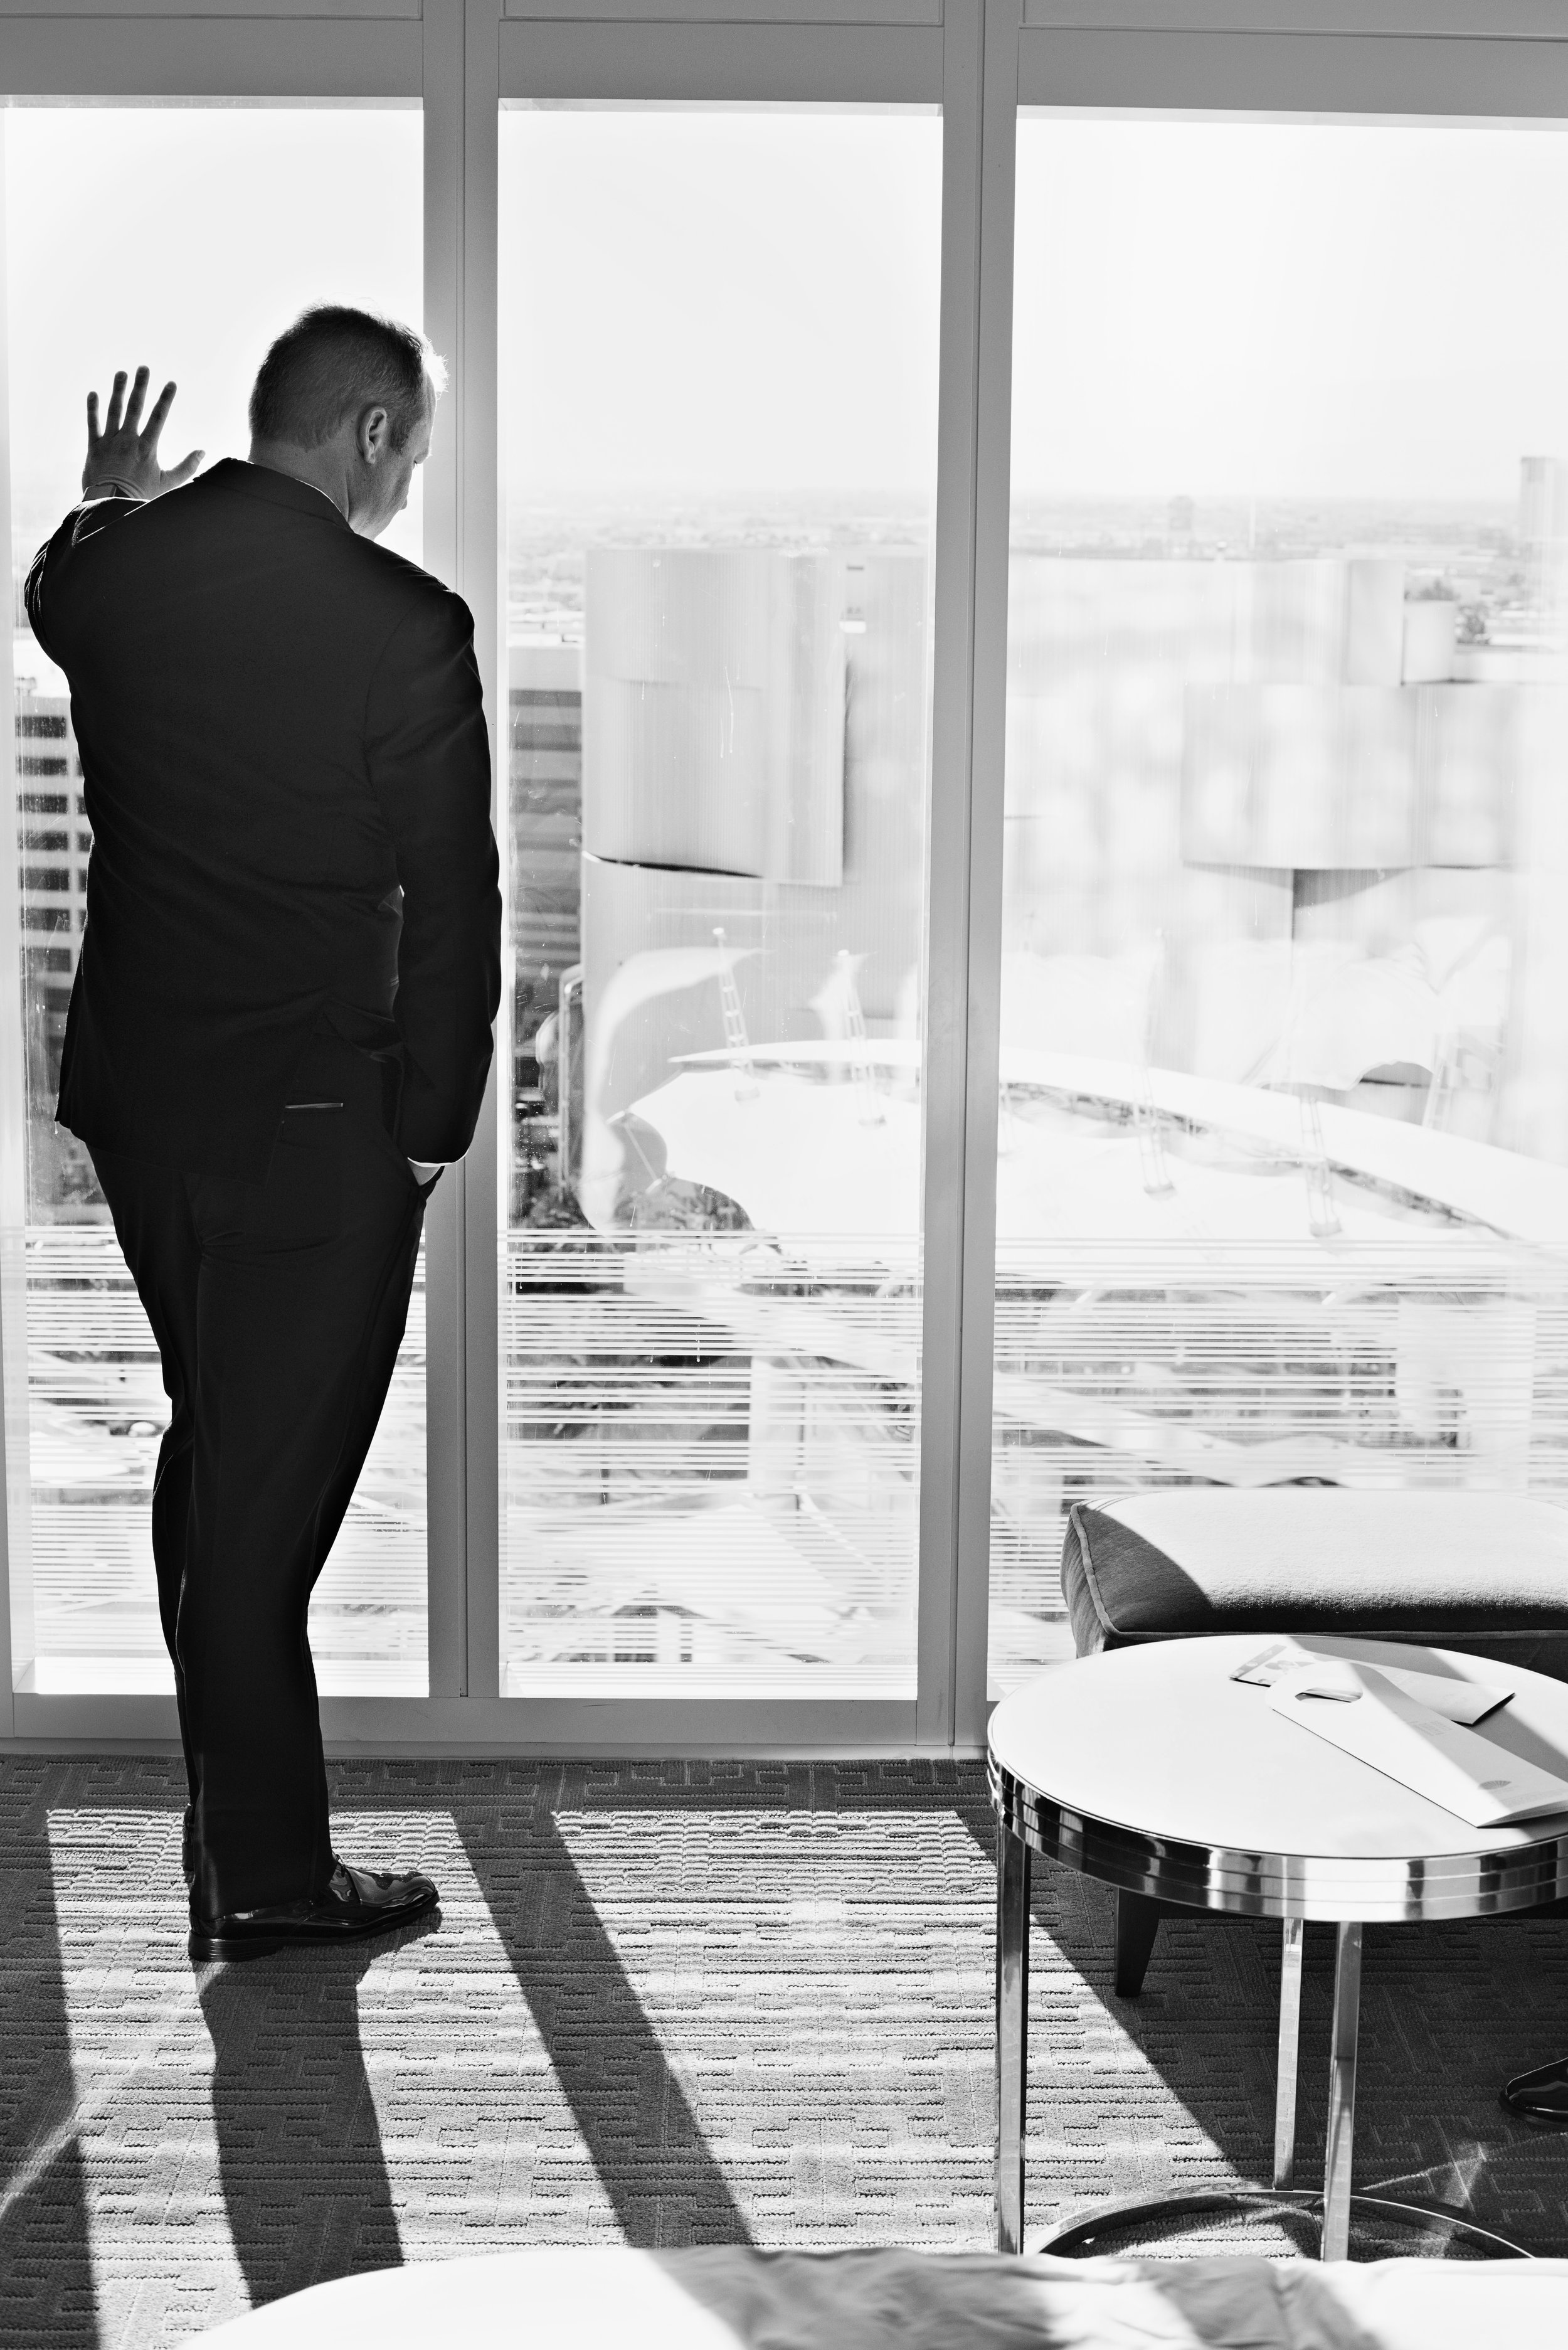 Groom looking out the window. Image by AltF.